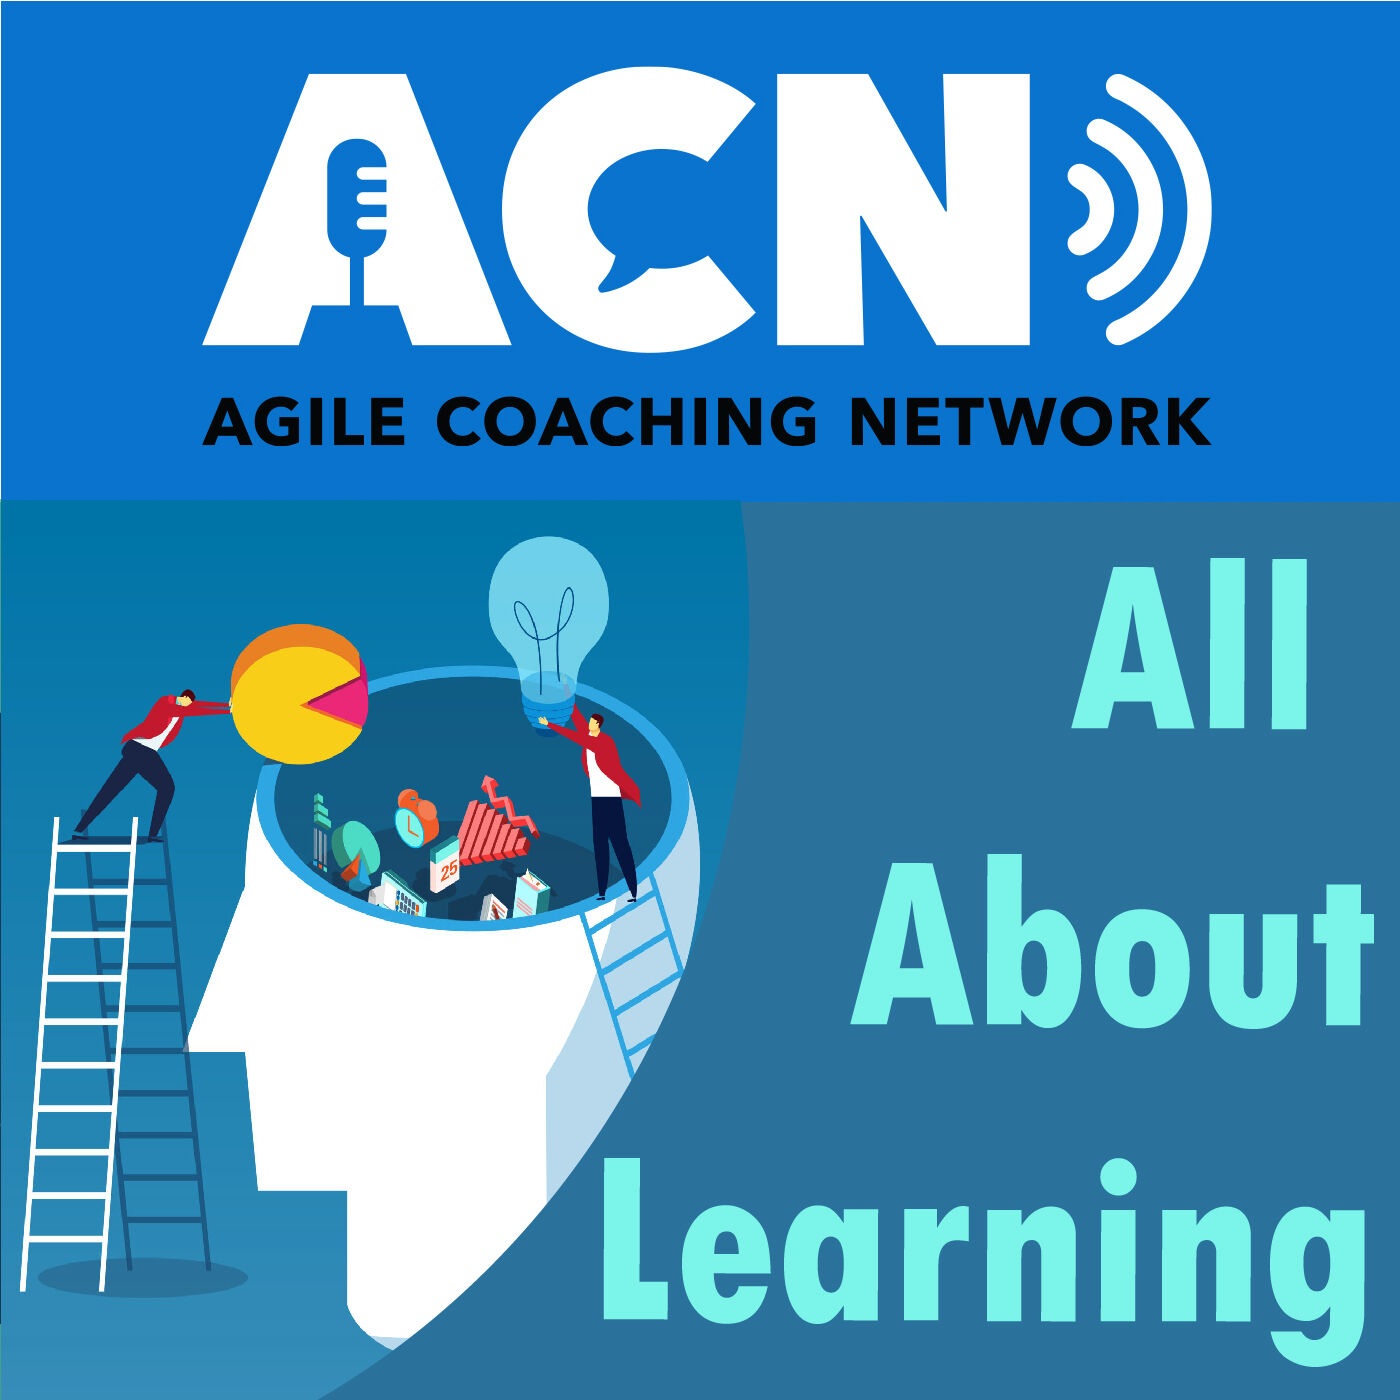 Team and personal learning, moving from scrum master to Agile coach, and moving to enterprise-level coach